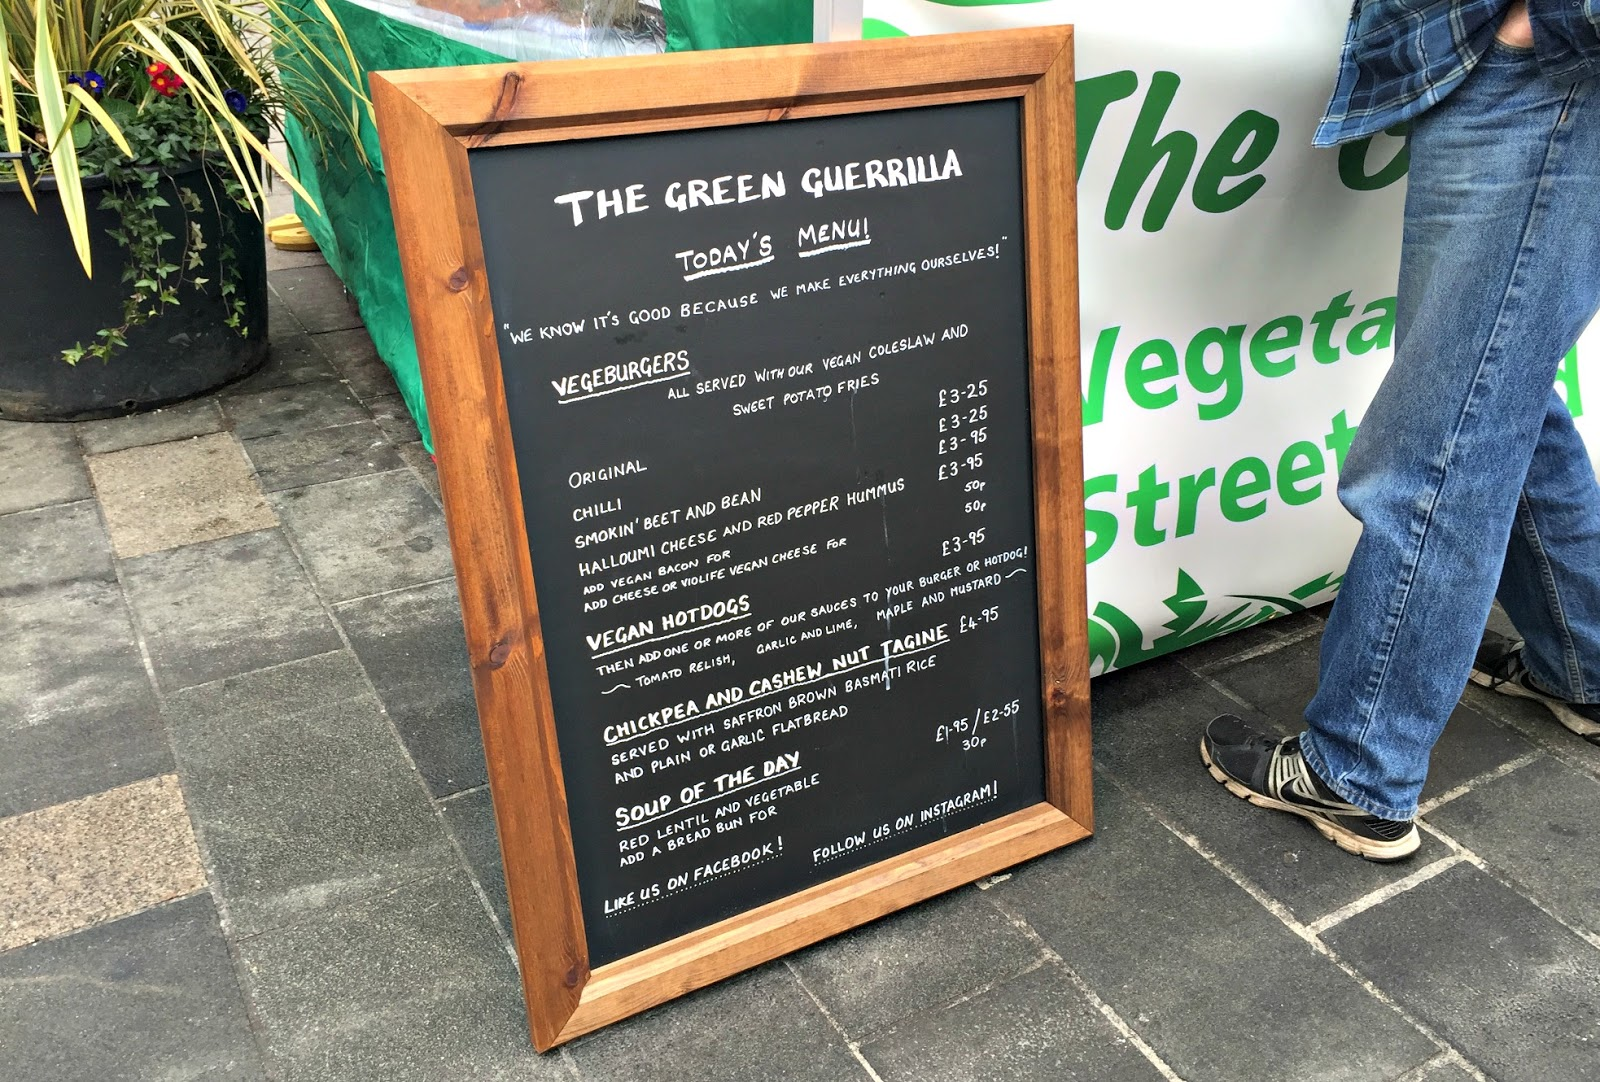 The Green Guerrilla Vegan and Vegetarian Food Durham